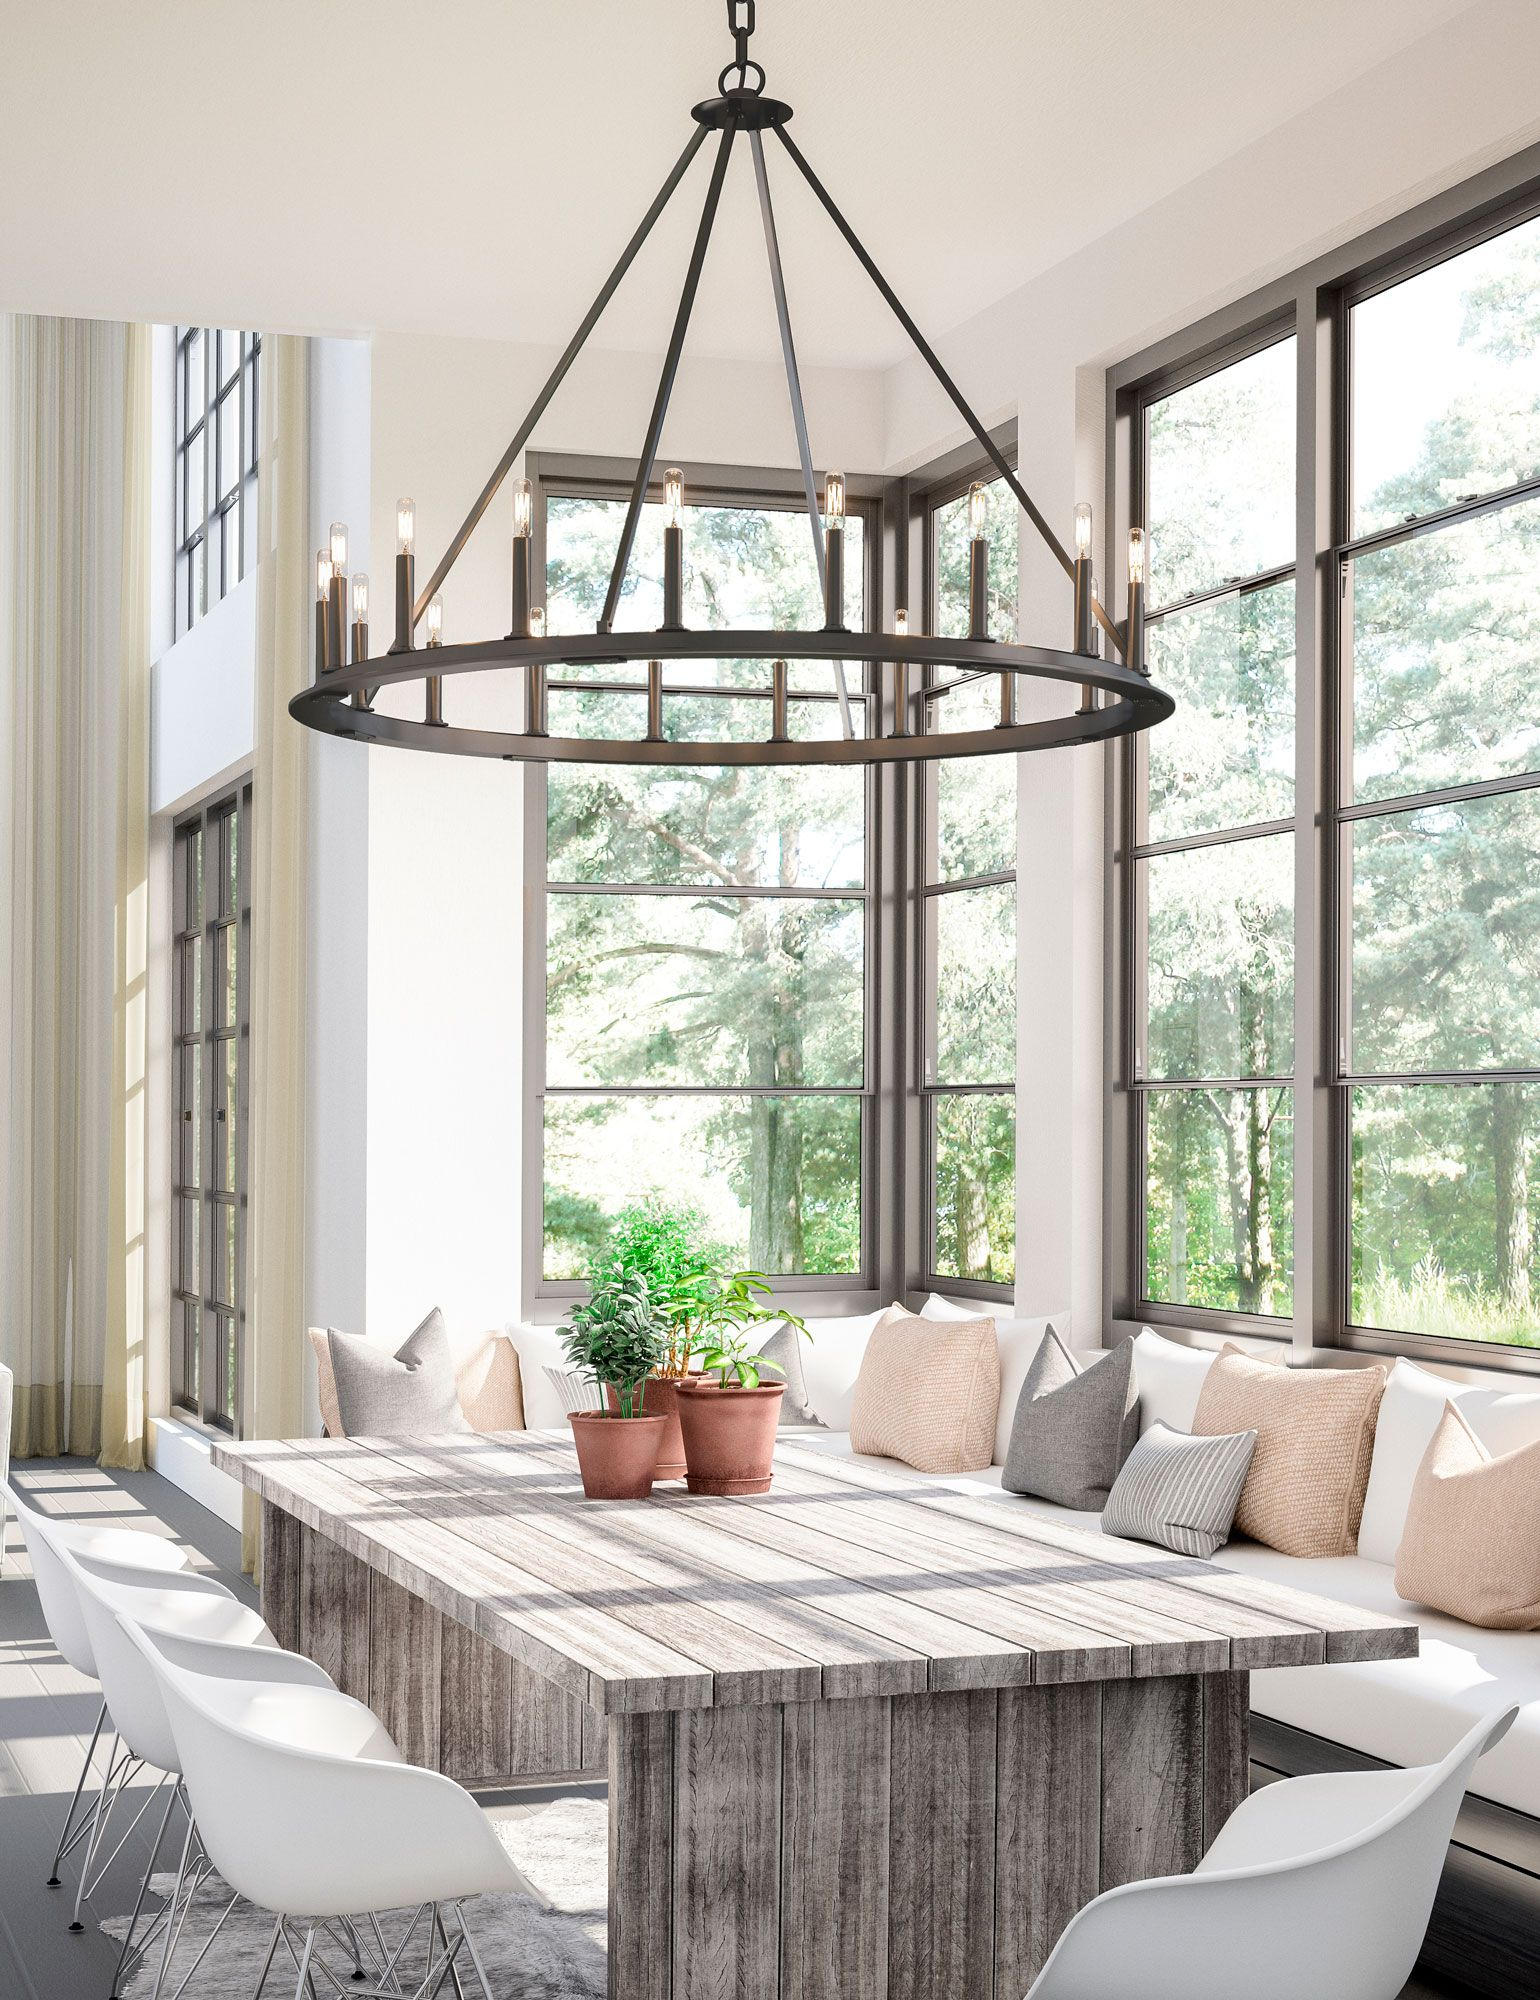 Astonishing Farmhouse Style Lighting Kitchens And Dining In 2019 Download Free Architecture Designs Scobabritishbridgeorg